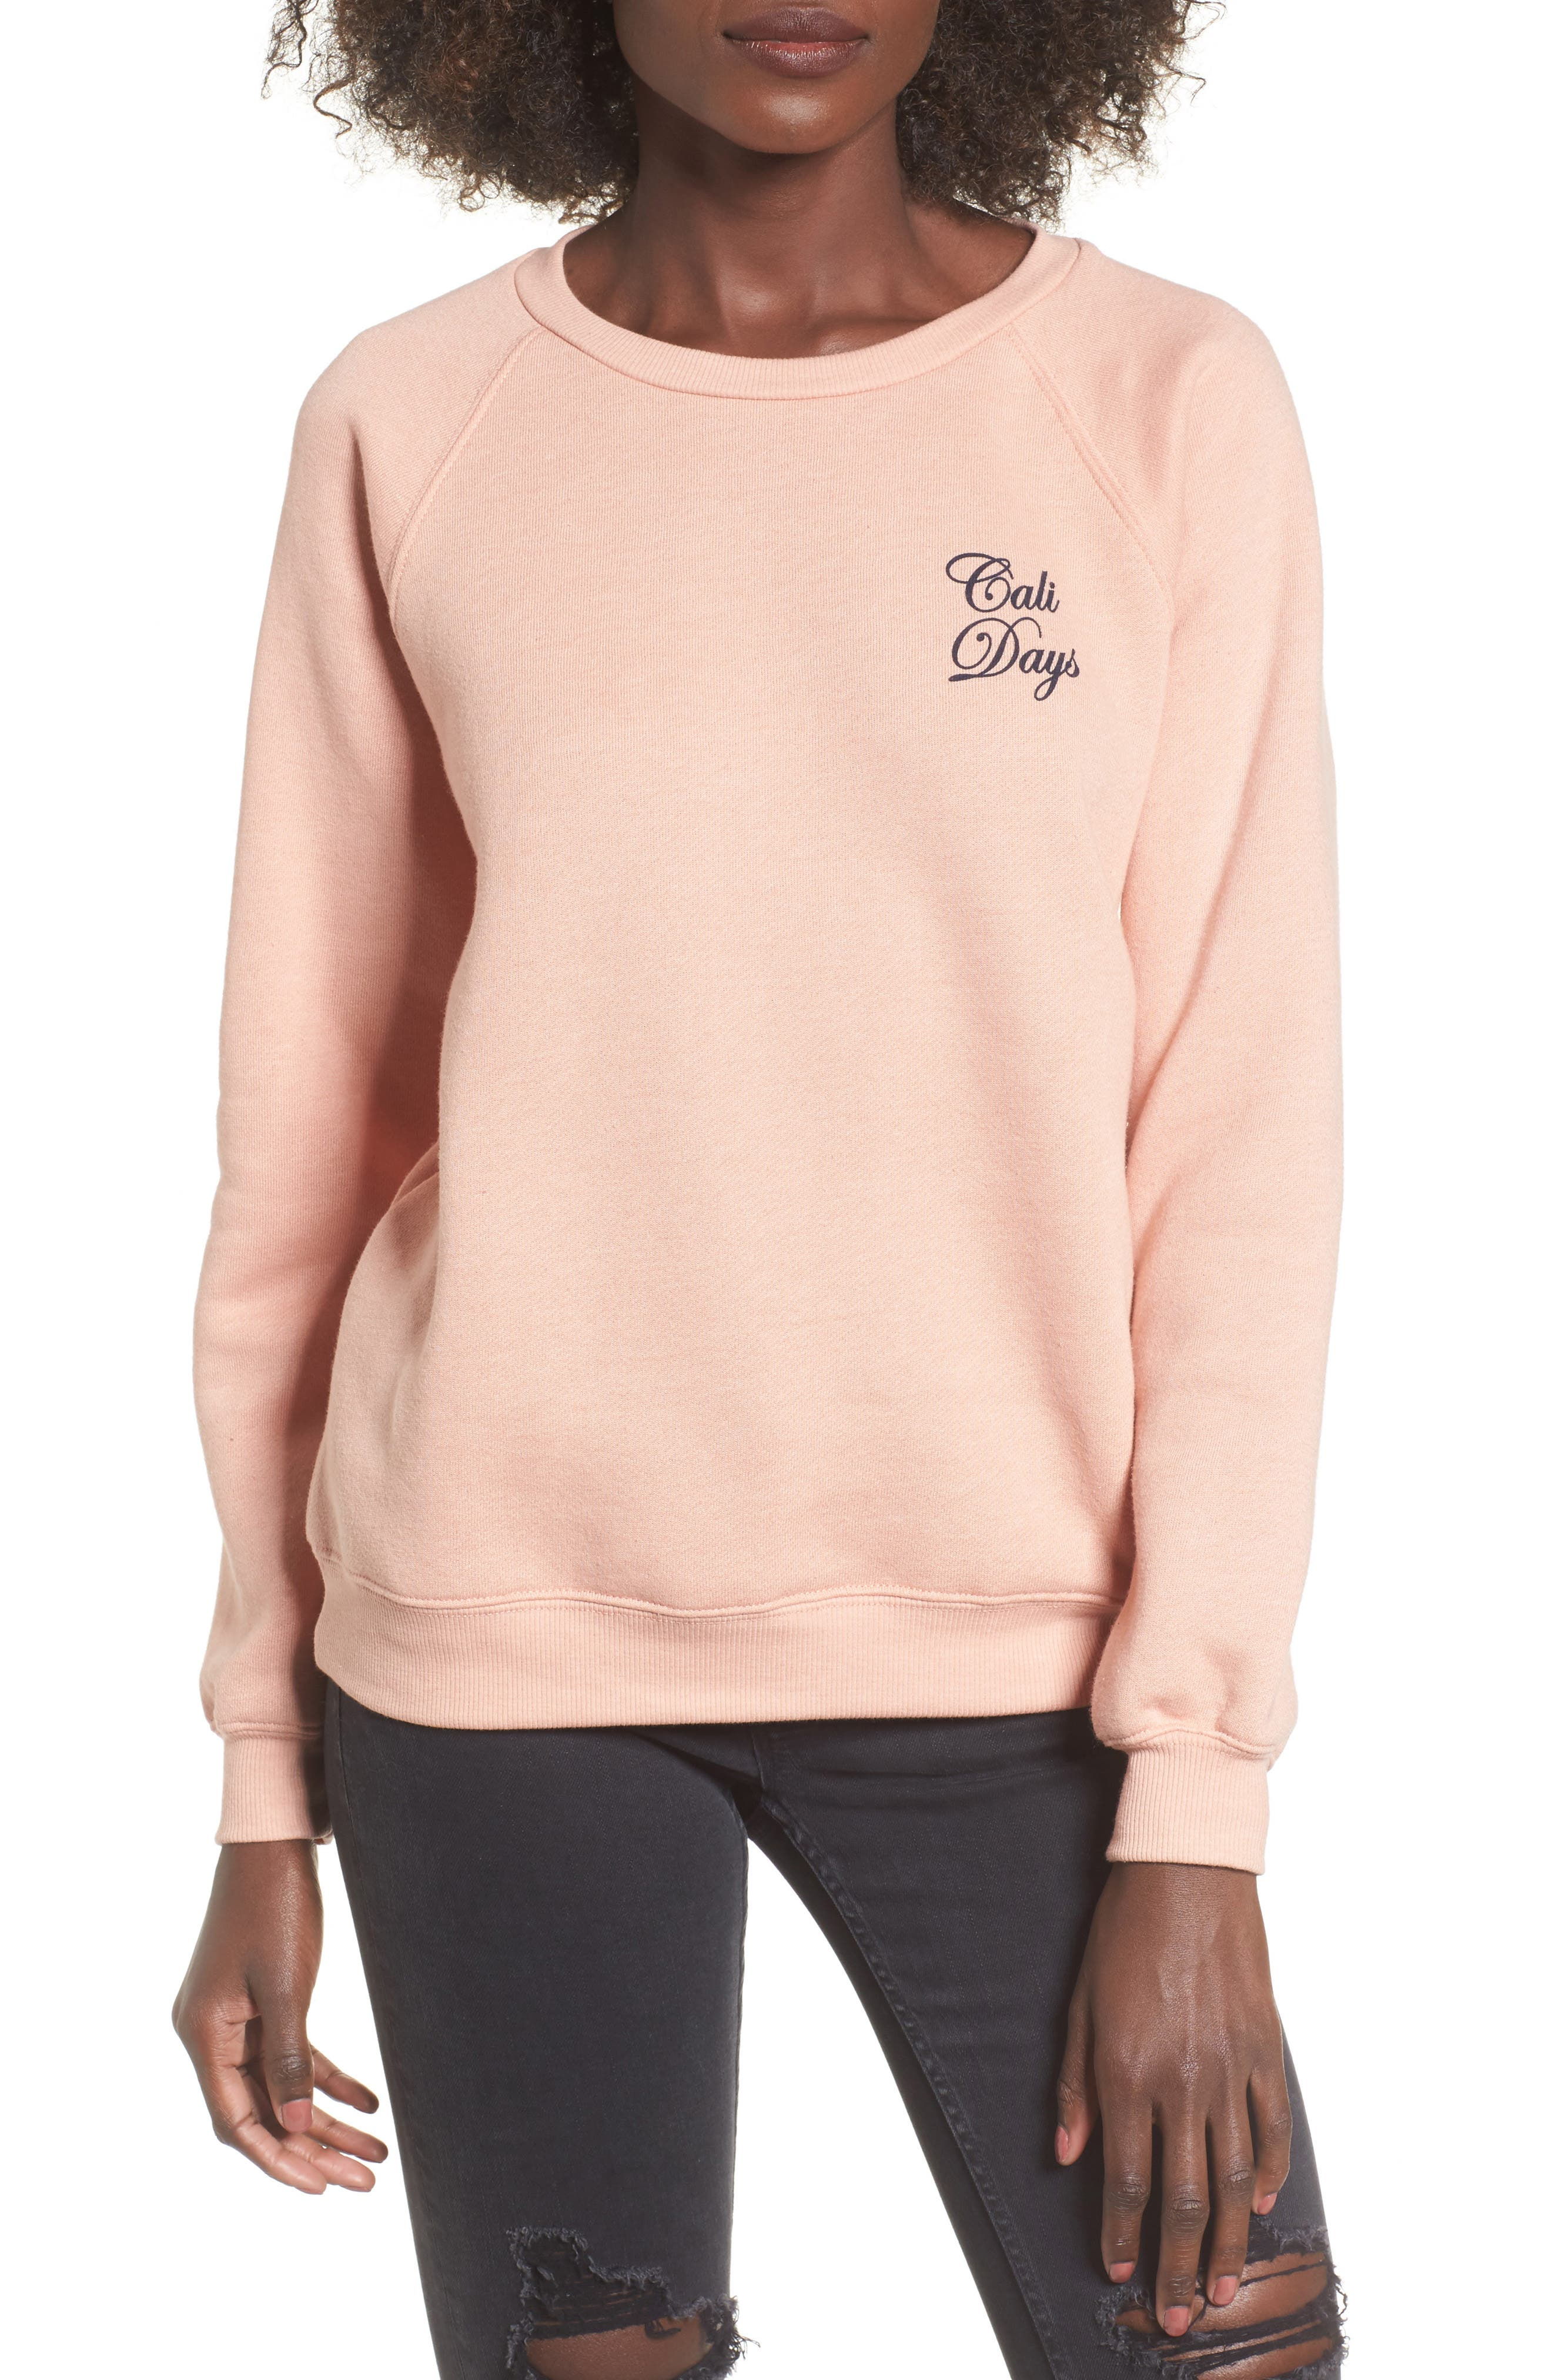 Cali Days Sweatshirt,                         Main,                         color, Pearl Pink